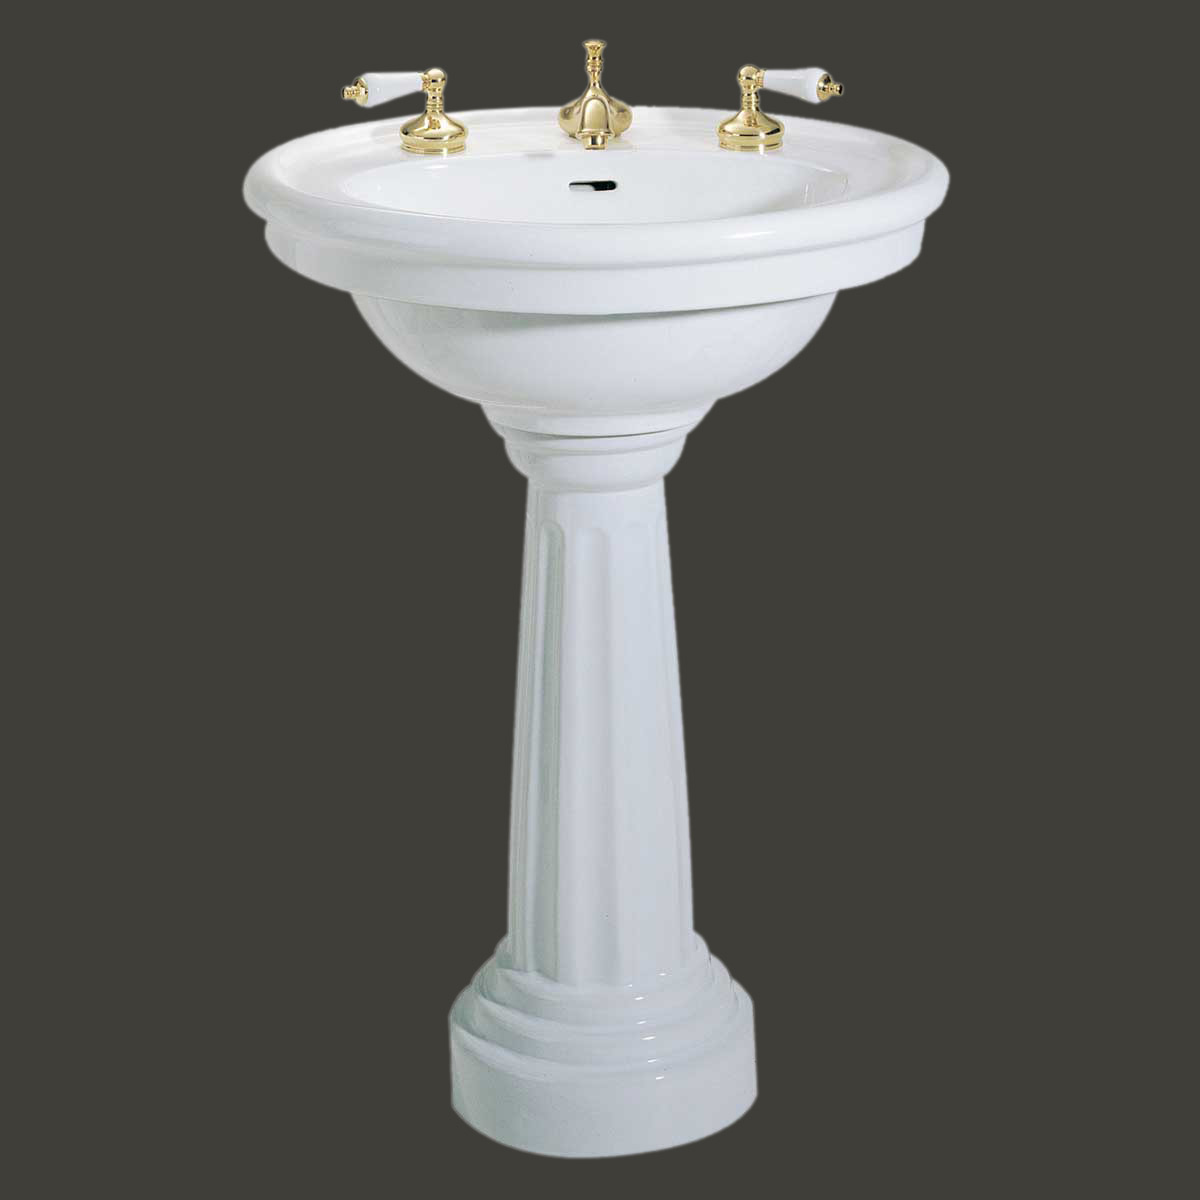 Home Plumbing Pedestal Sinks Medium Pedestal Sinks